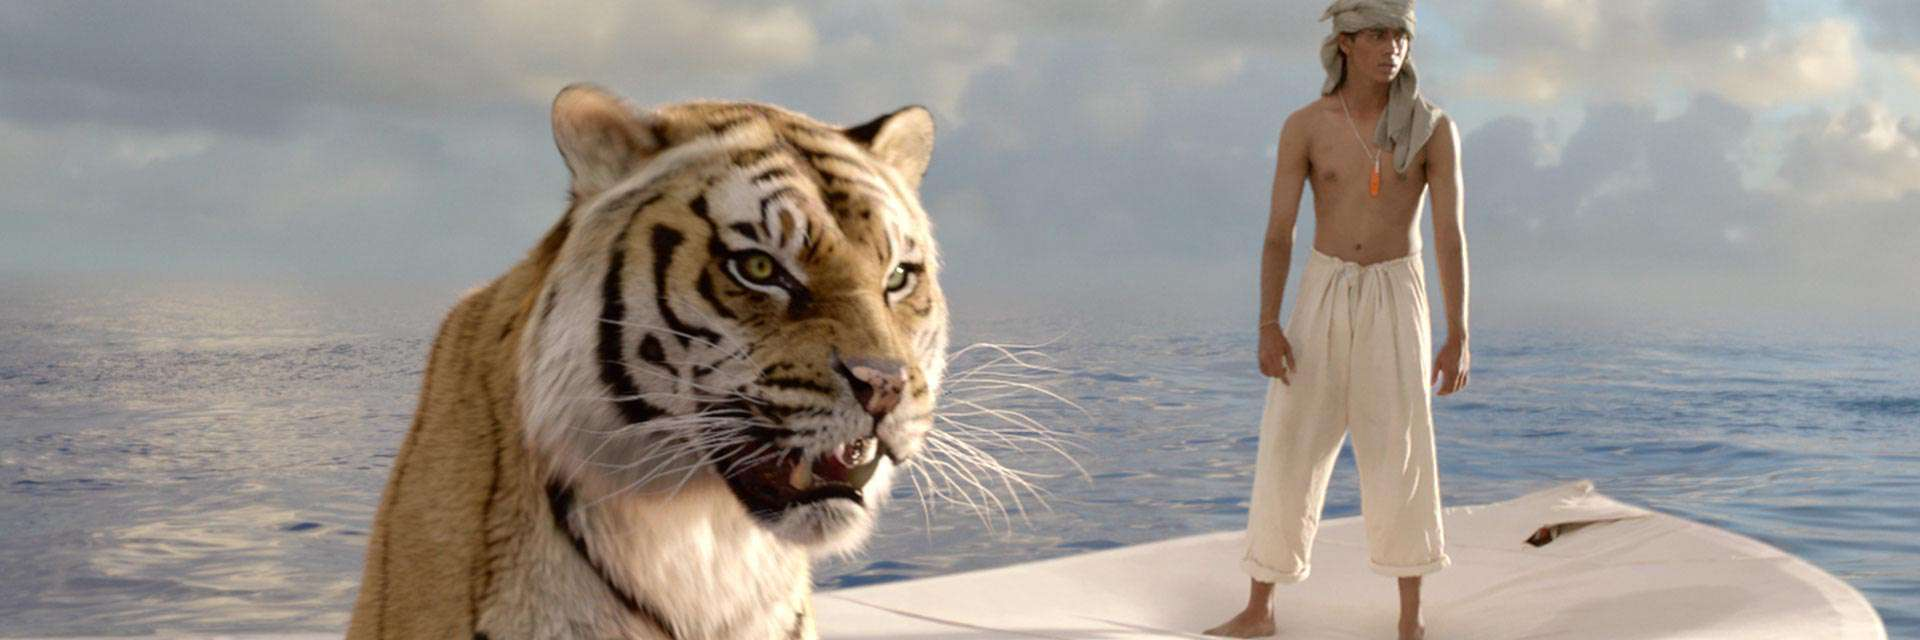 life of pi for rent other new releases on dvd at redbox share